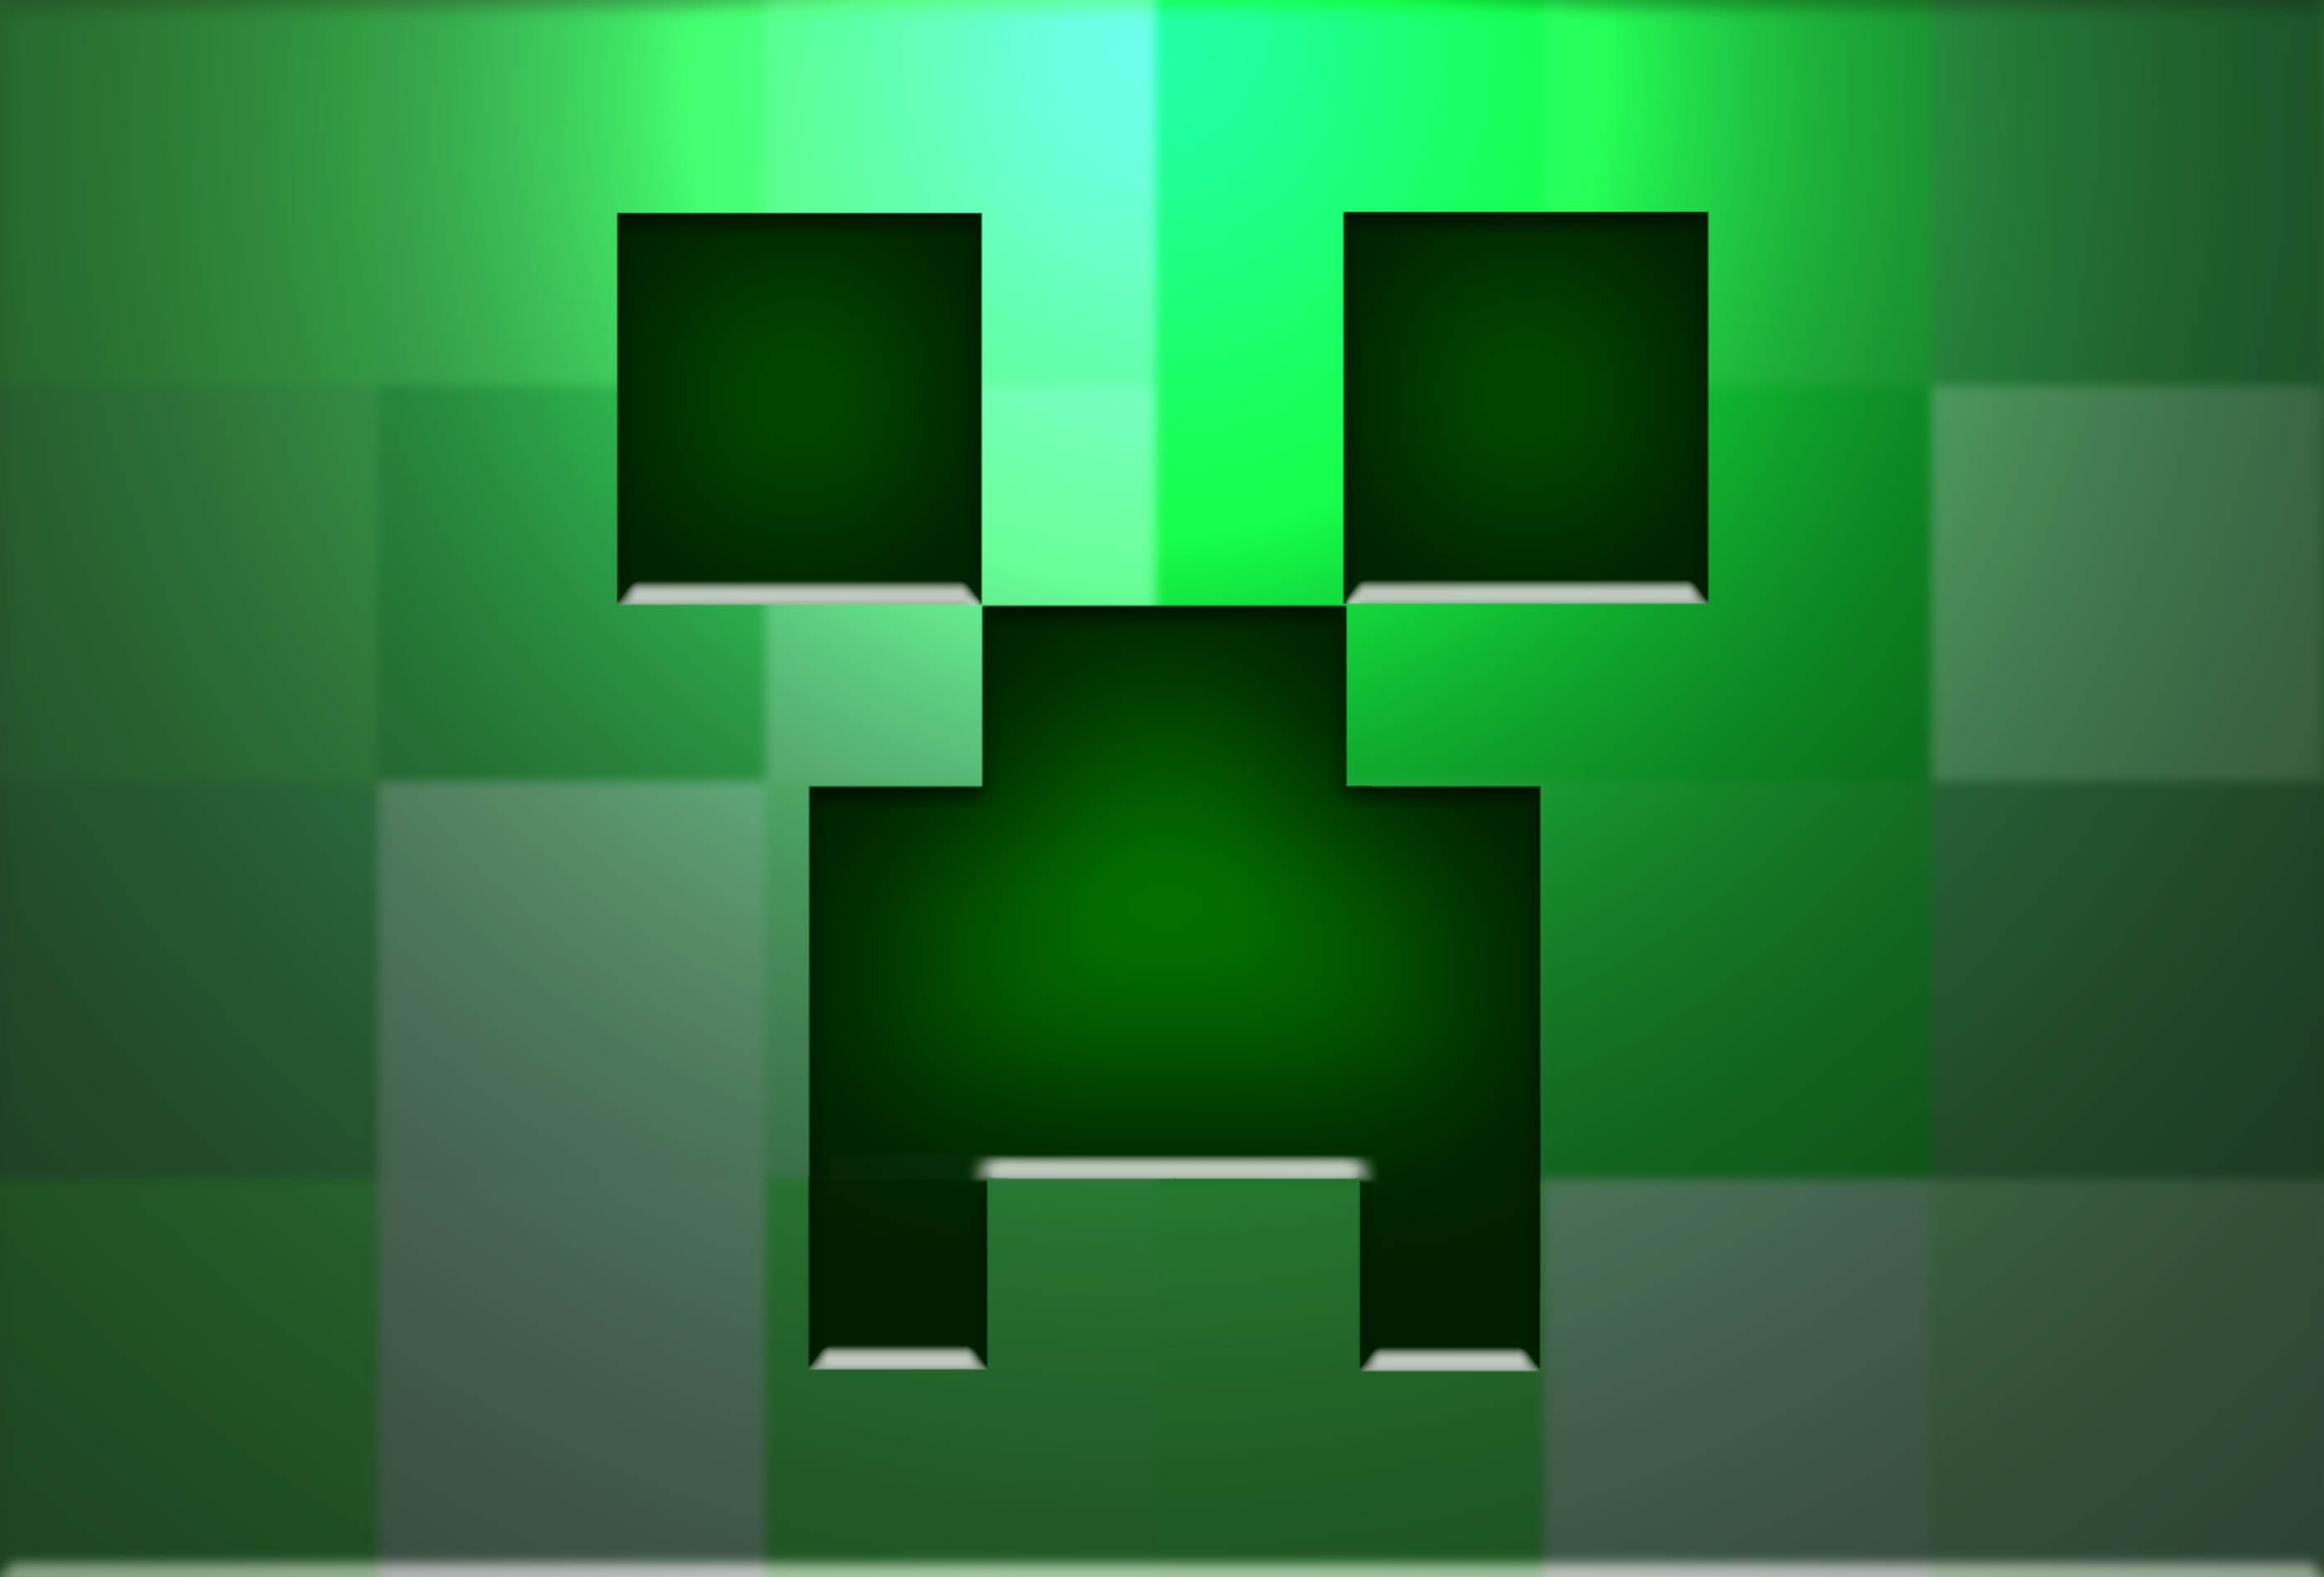 Cool Minecraft Wallpapers For Tablet Gallery Wallpaper